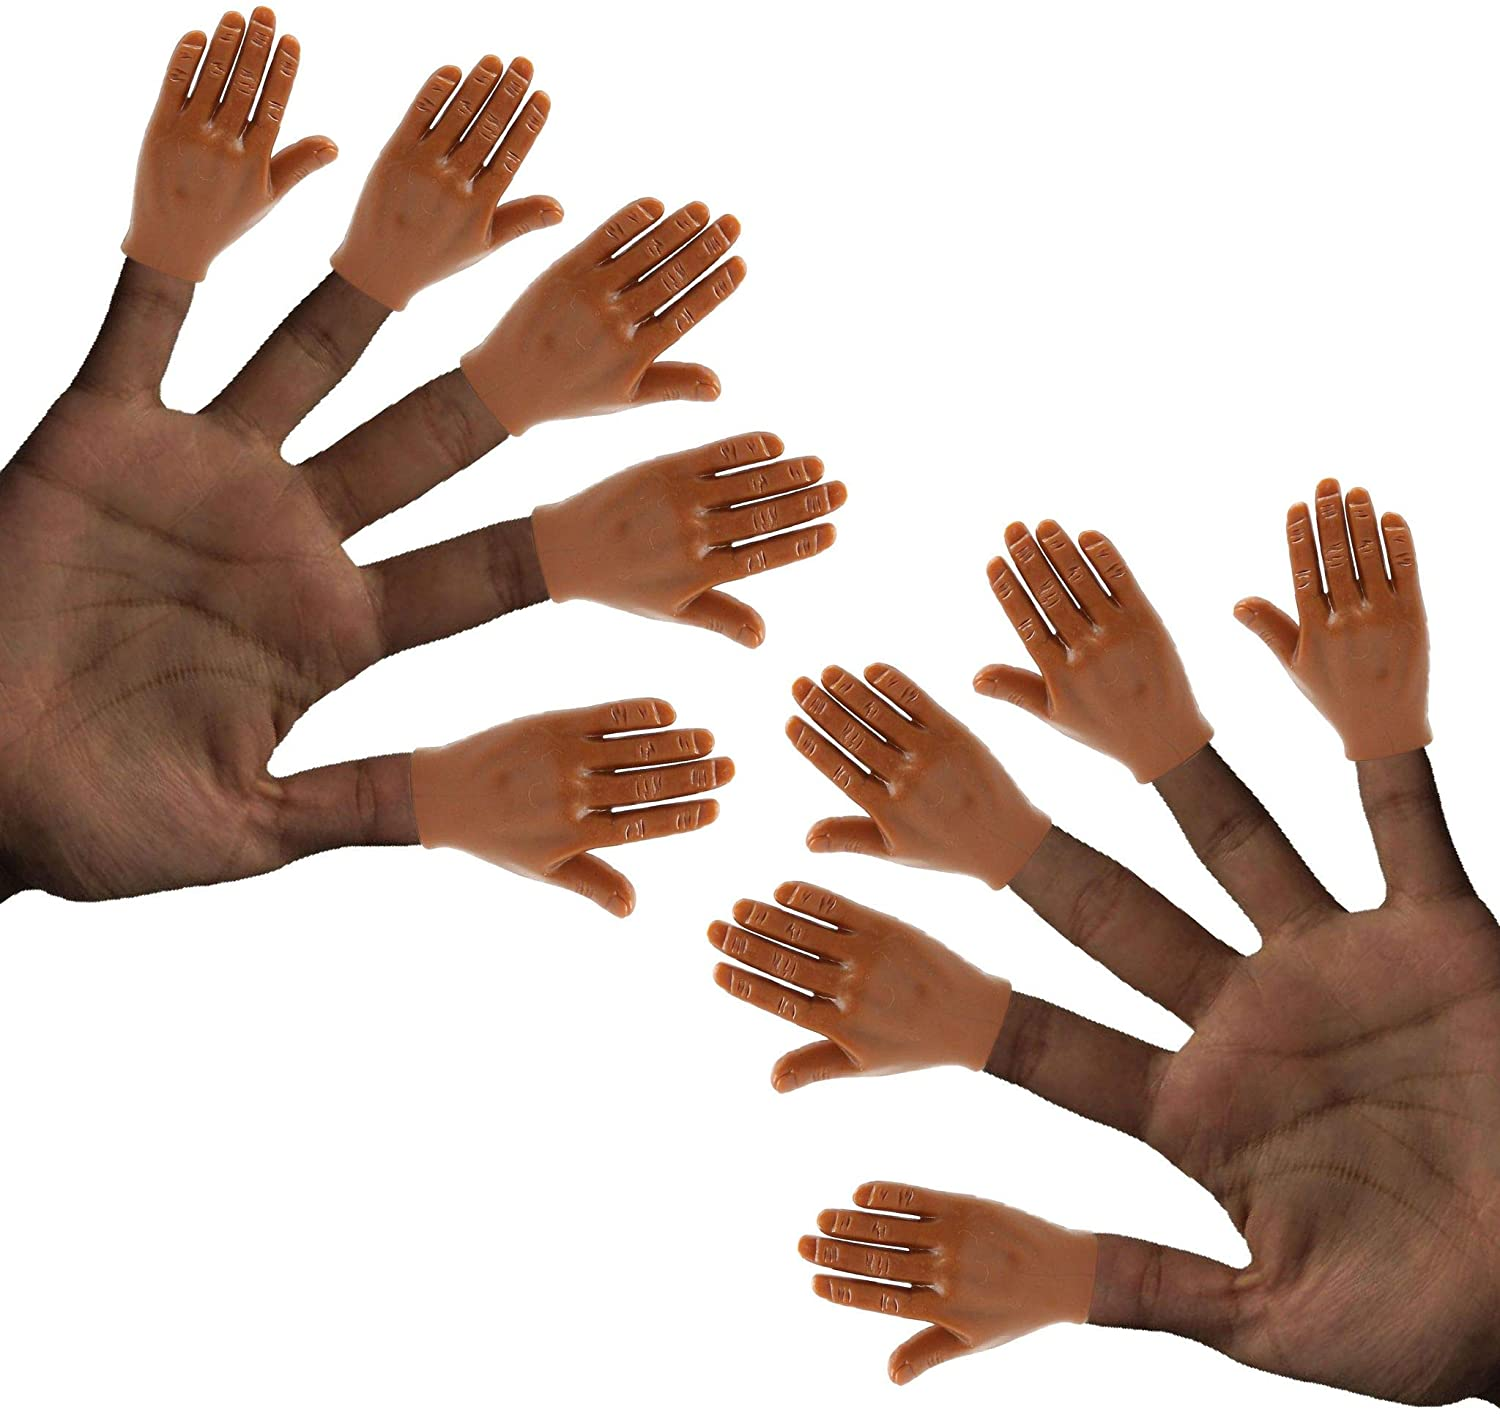 Daily Portable Dark Skin Tone Tiny Hands (High Five) 10 Pack- Flat Hand Style Mini Hand Puppet - 5 Left & 5 Right Hands